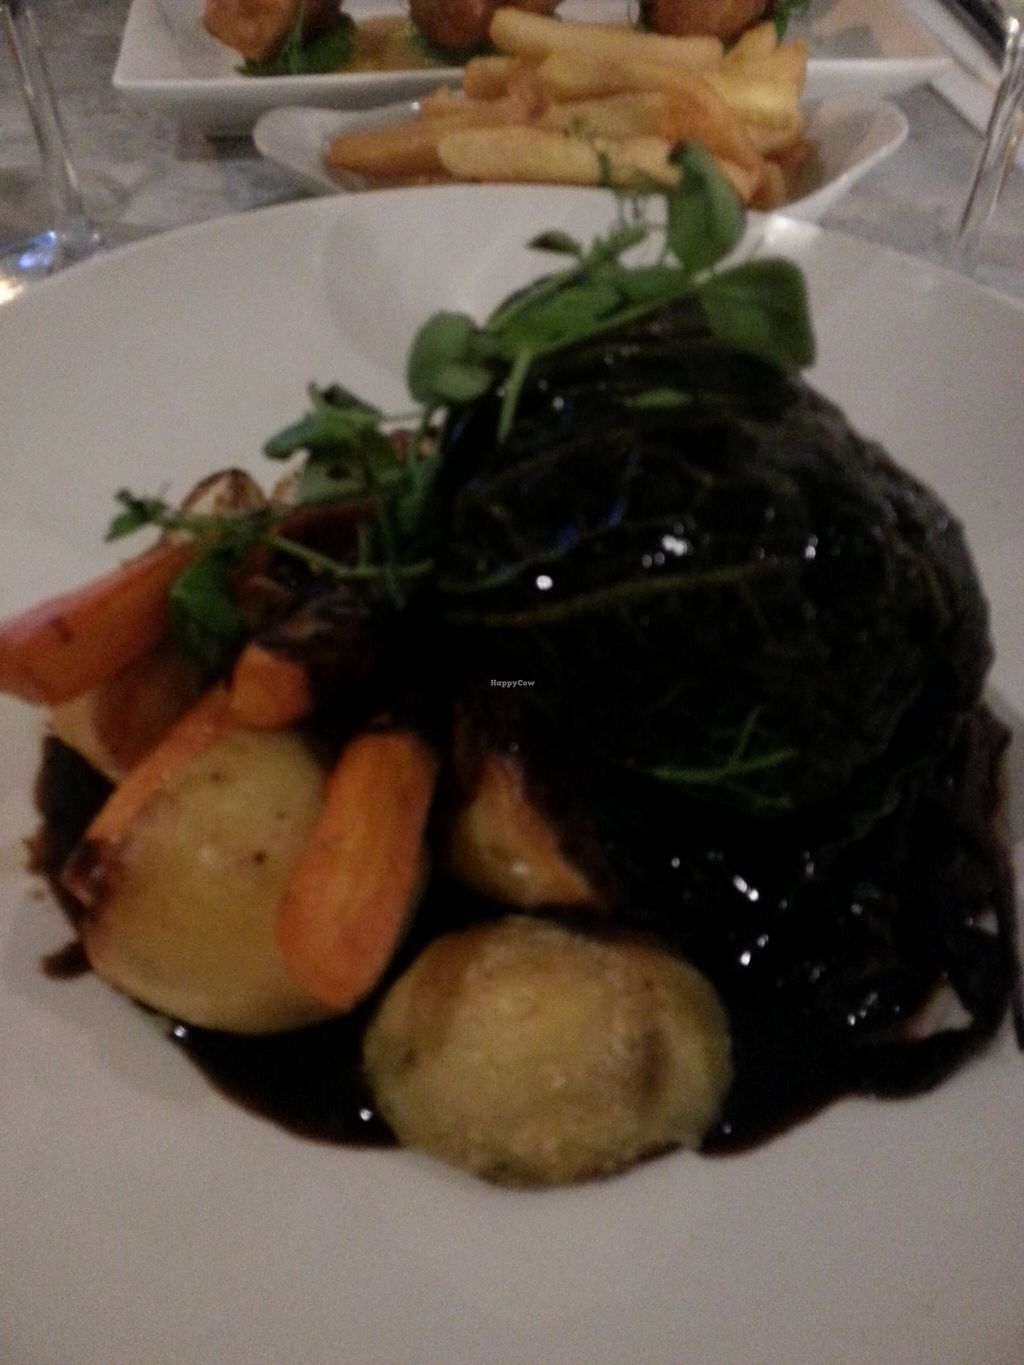 """Photo of CLOSED: 1847  by <a href=""""/members/profile/Miggi"""">Miggi</a> <br/>Xmas roast <br/> January 4, 2016  - <a href='/contact/abuse/image/65957/131064'>Report</a>"""